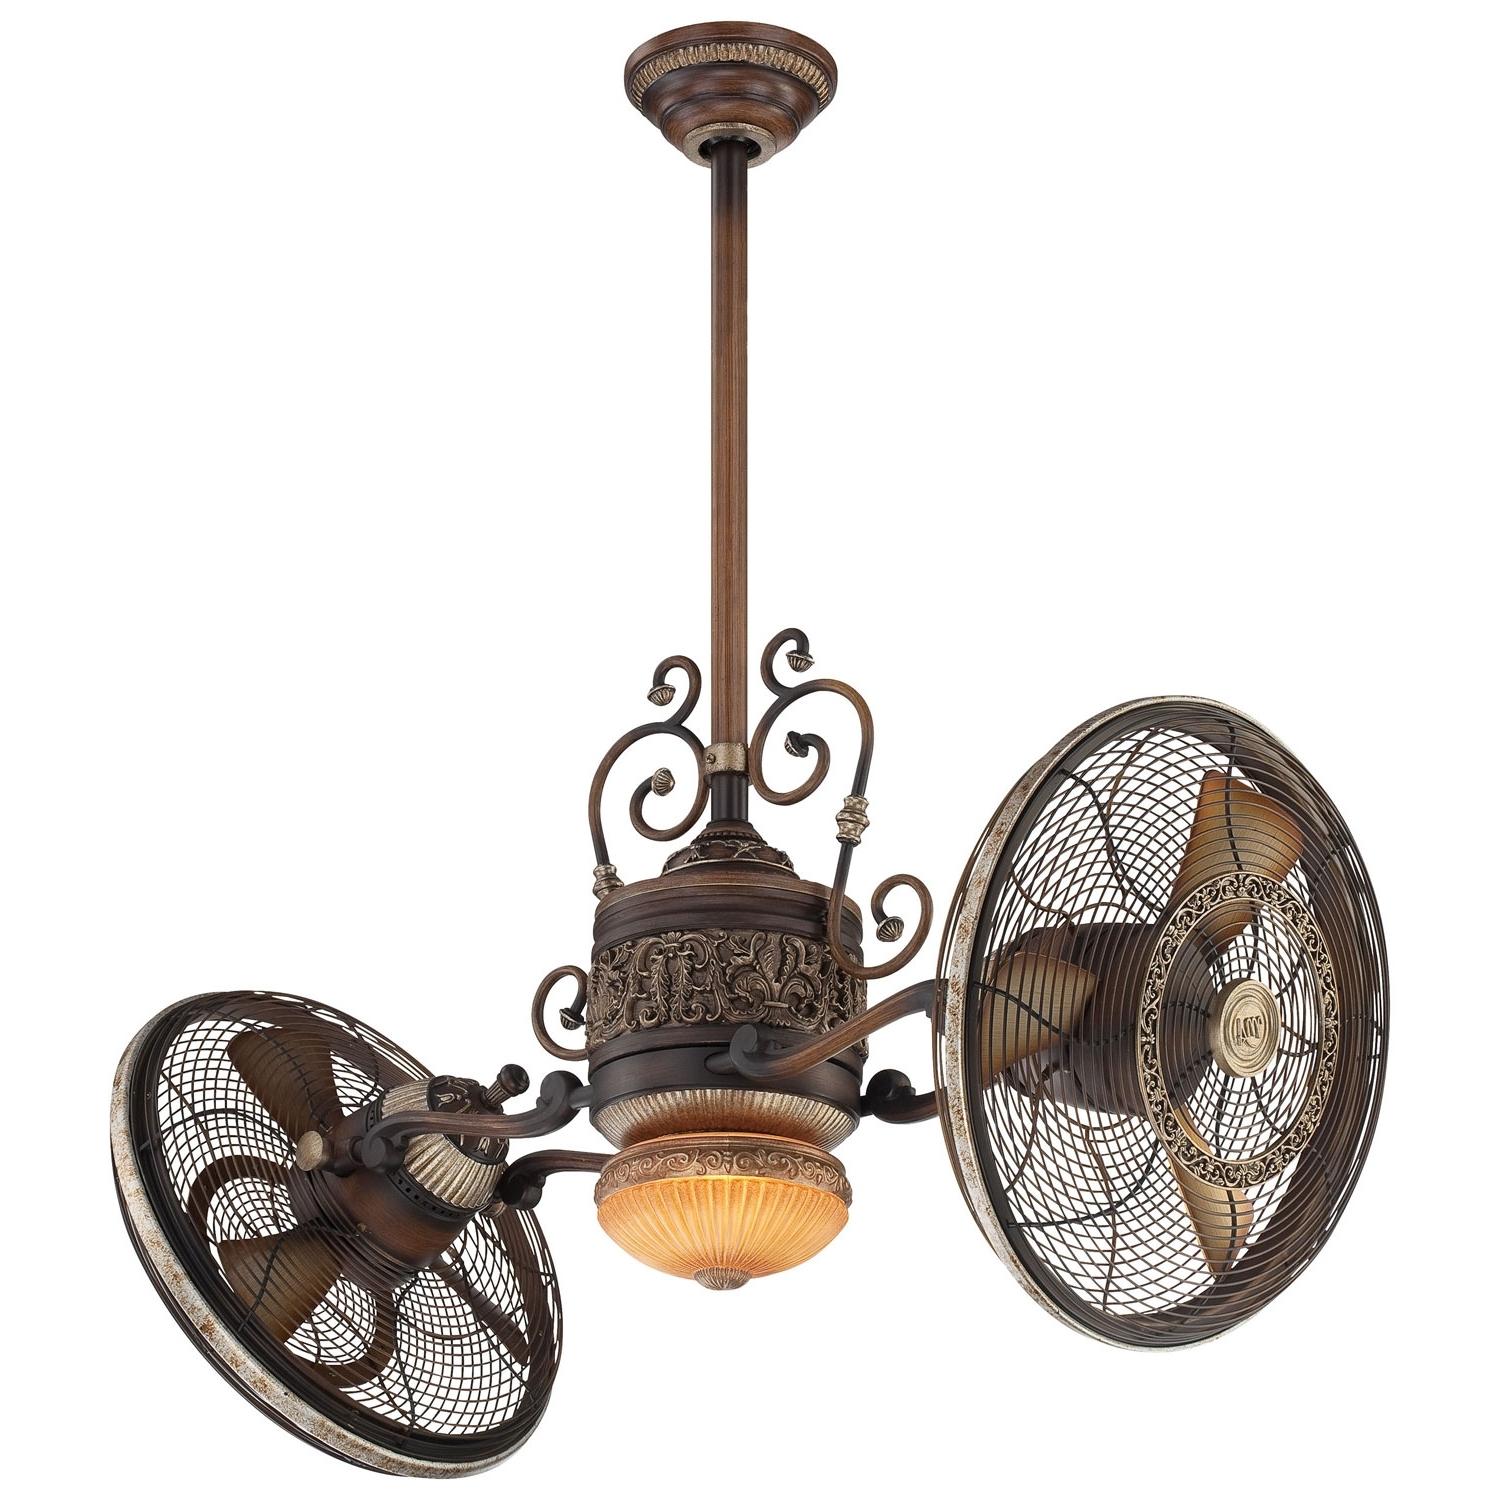 Minka Aire 42 Inch Traditional Gyro Belcaro Walnut Ceiling Fan F502 Pertaining To Current Traditional Outdoor Ceiling Fans (View 11 of 20)